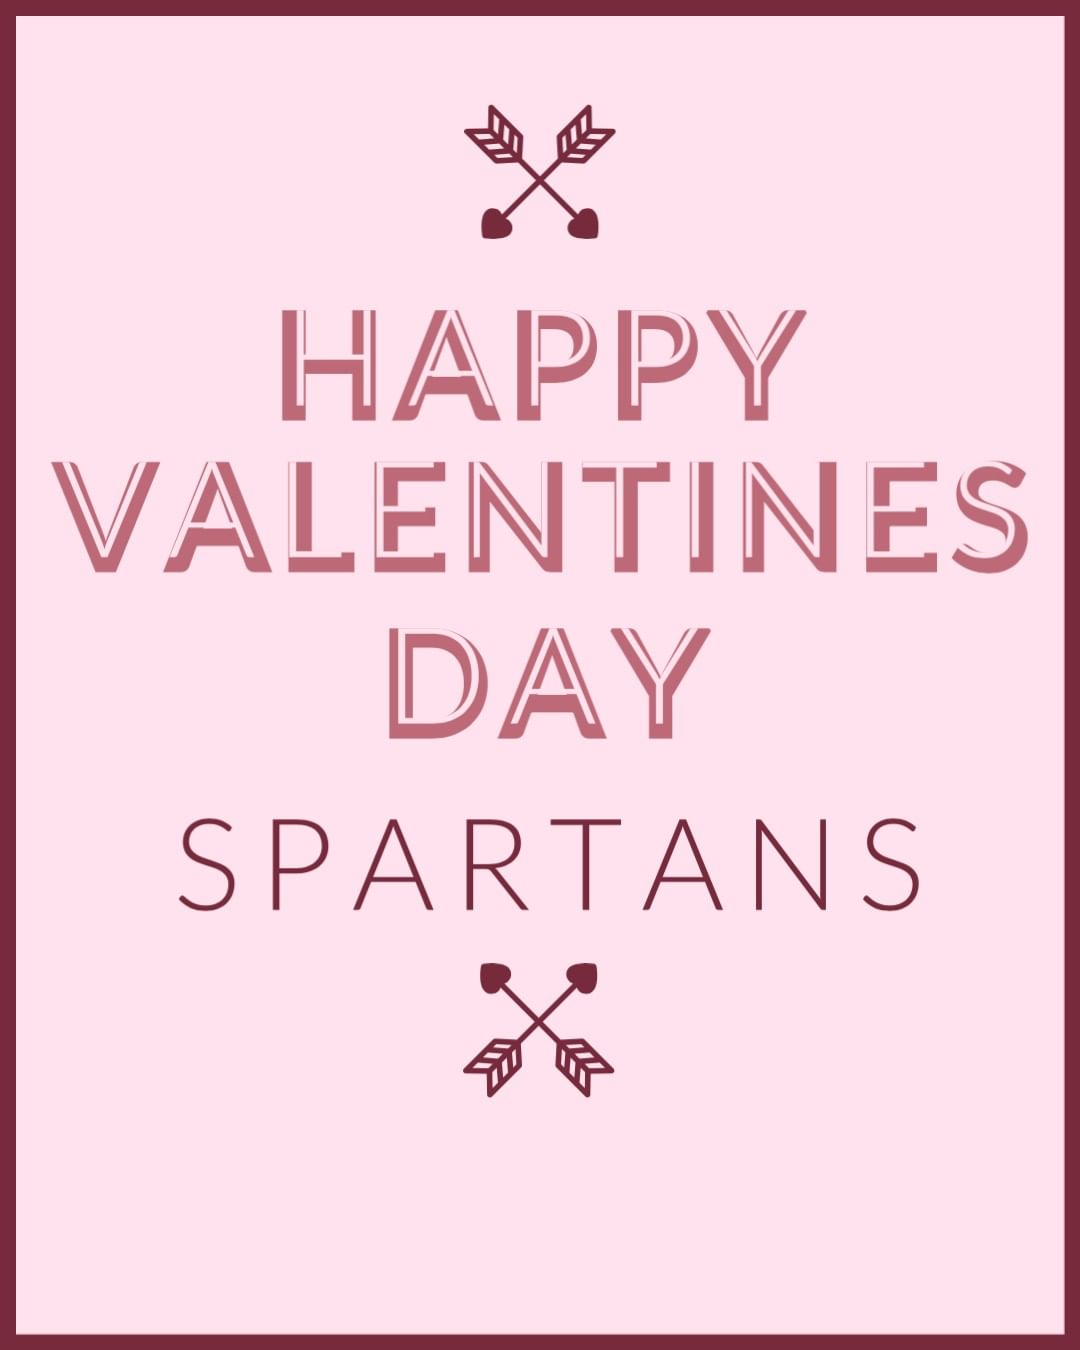 Happy Valentine's Day! We're here for you 💚